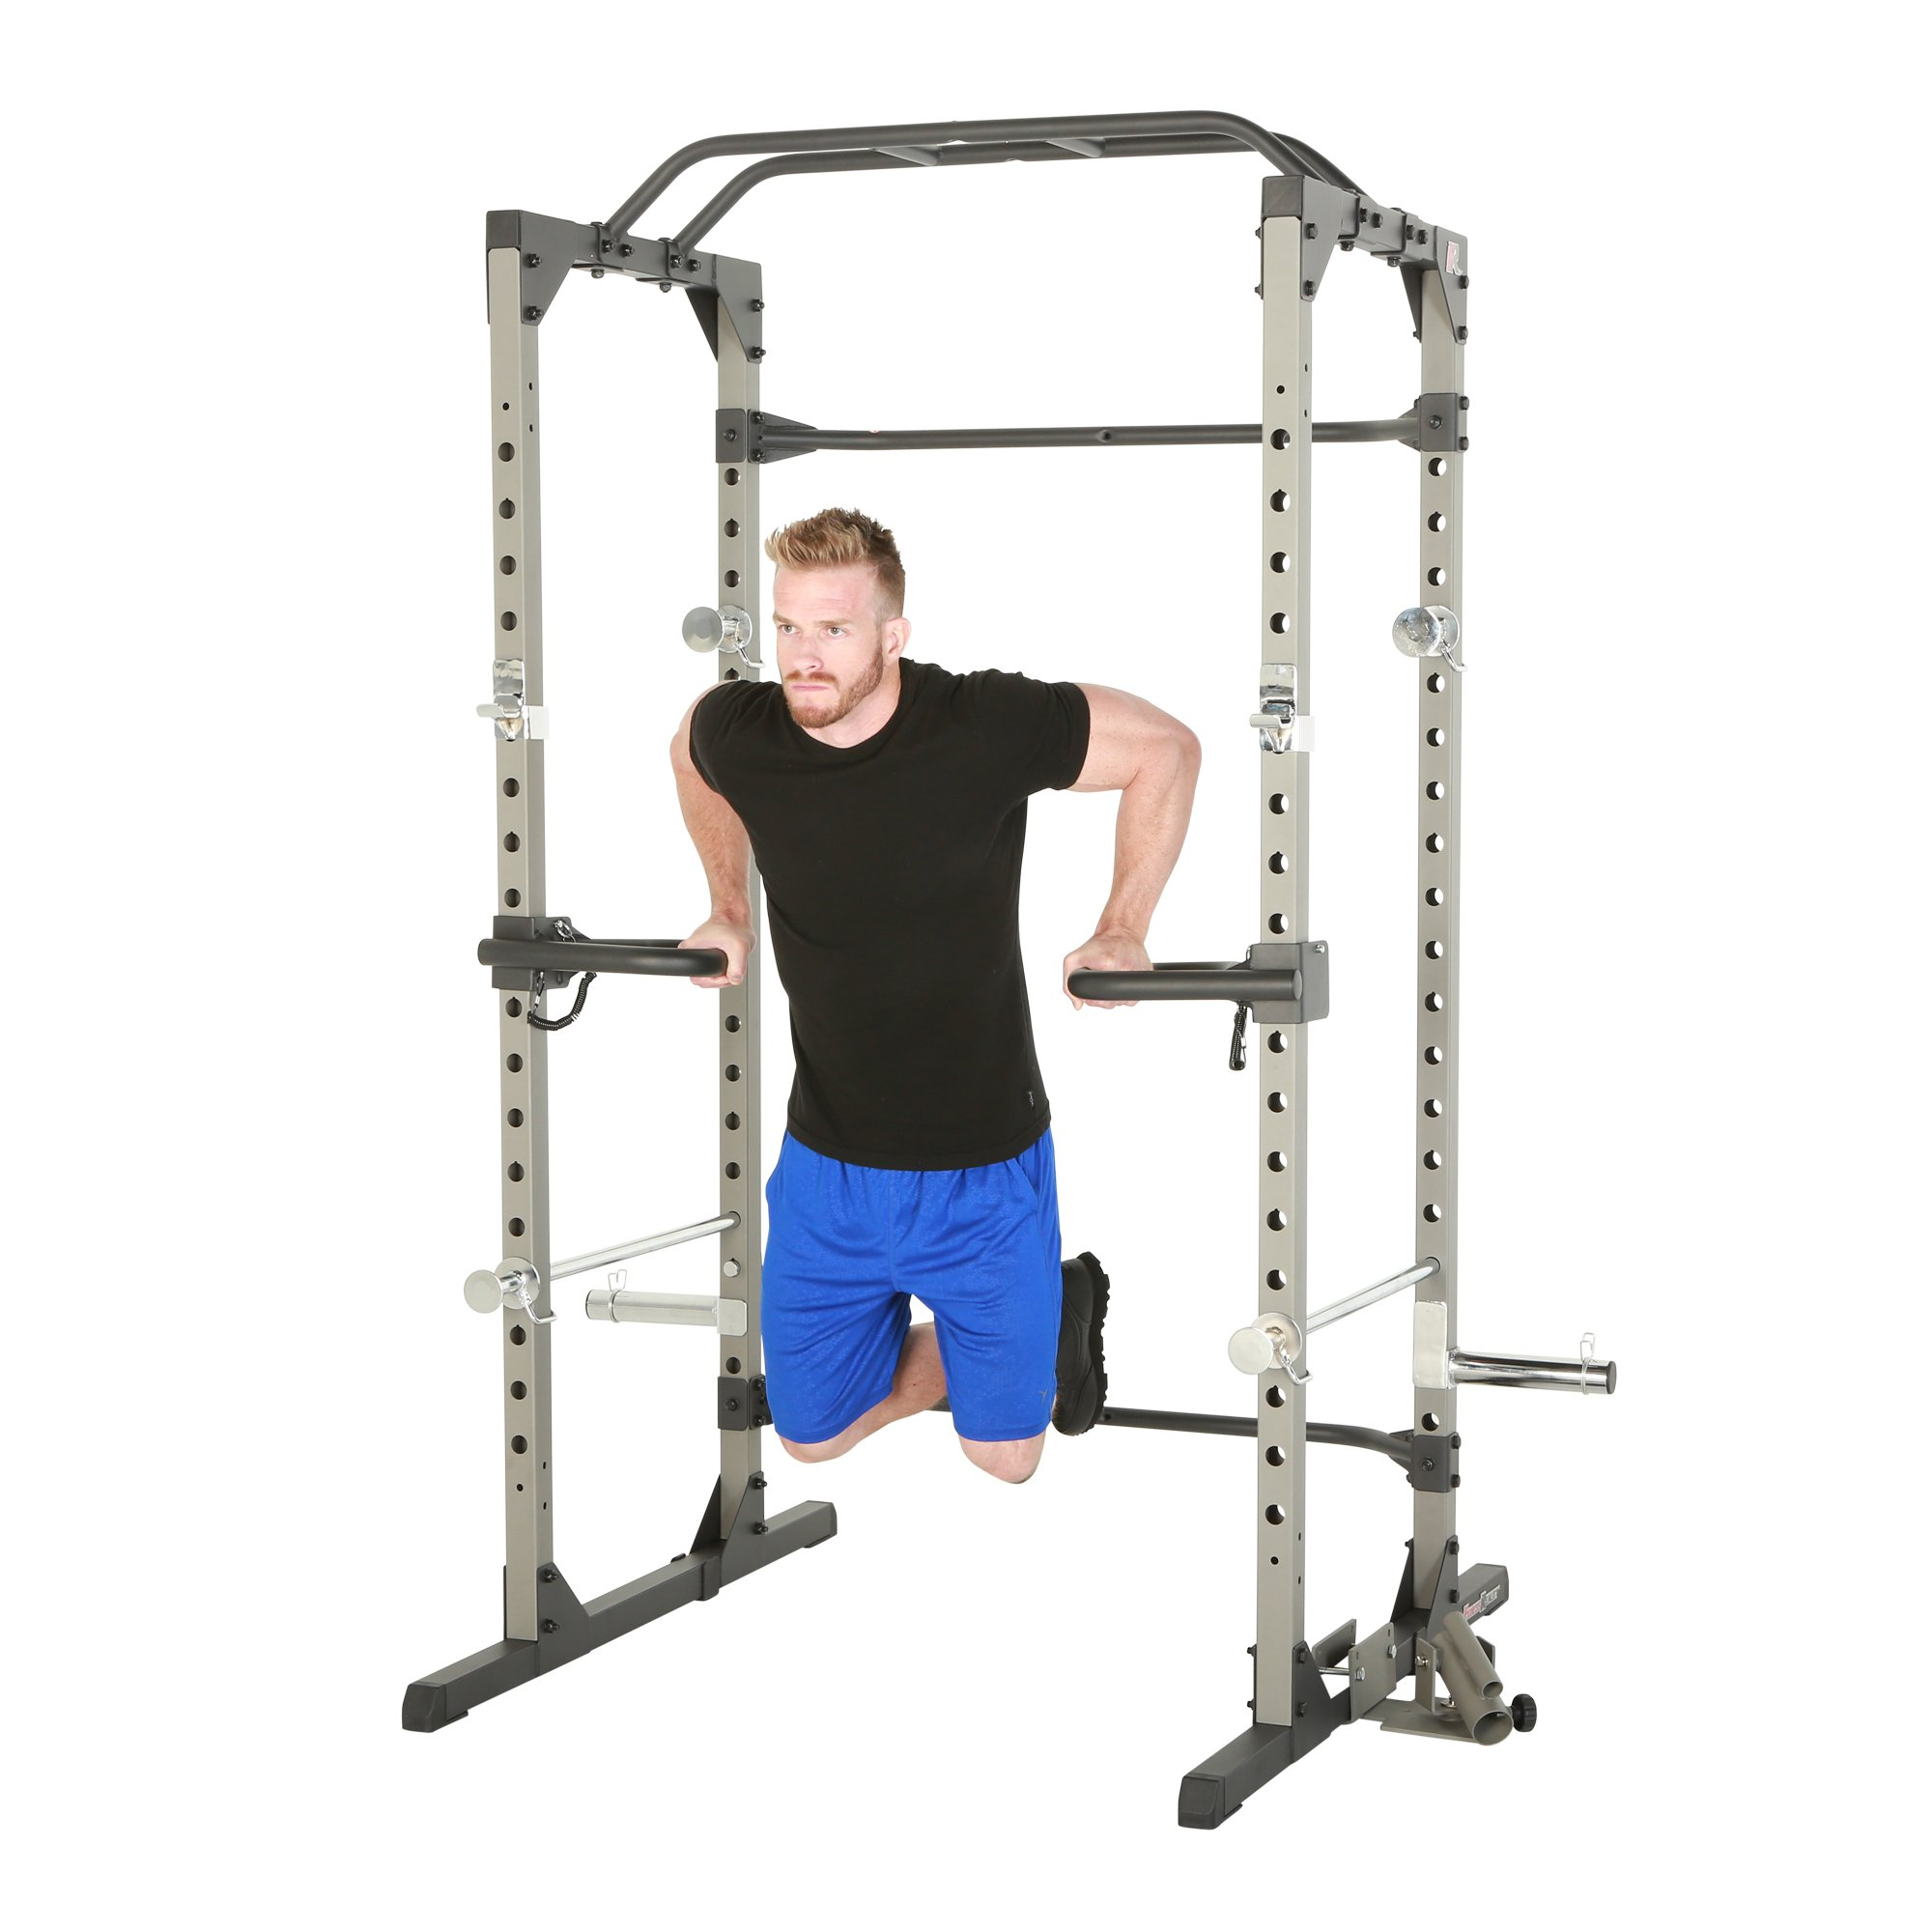 Fitness Reality Attachment Set for 2''x2'' Steel Tubing Power Cages by Fitness Reality (Image #5)